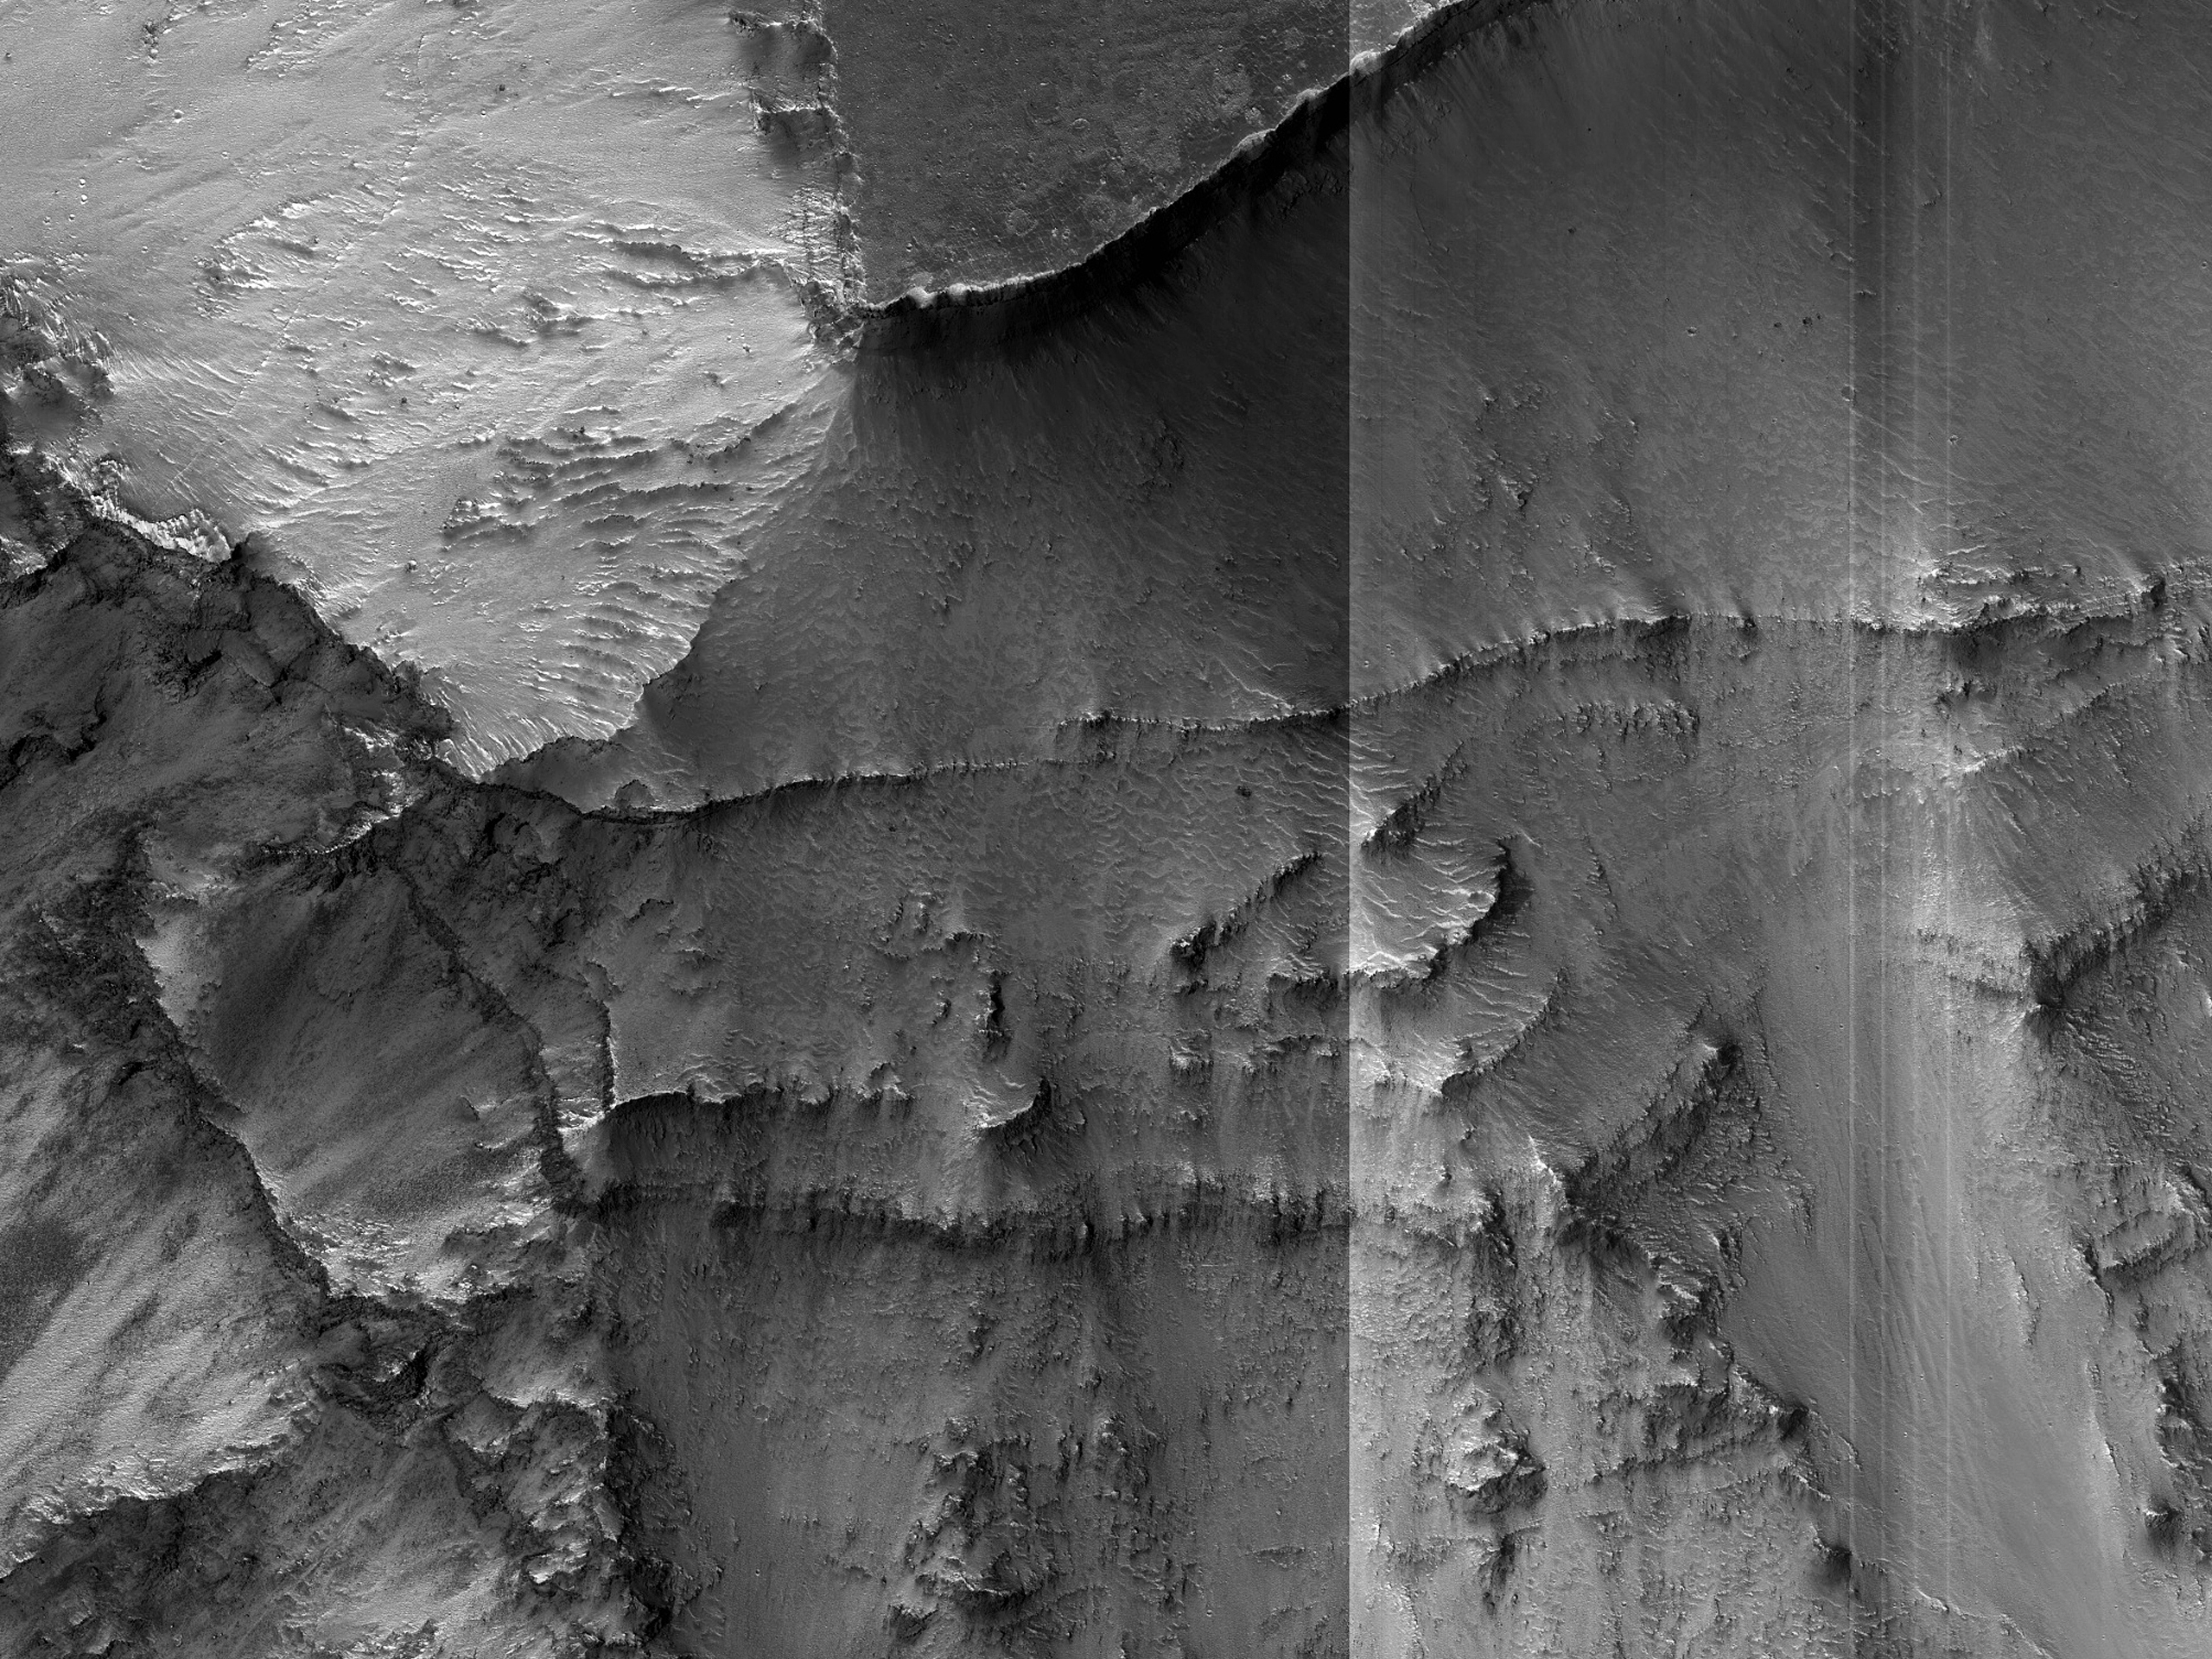 Layers in a Valles Marineris Wall